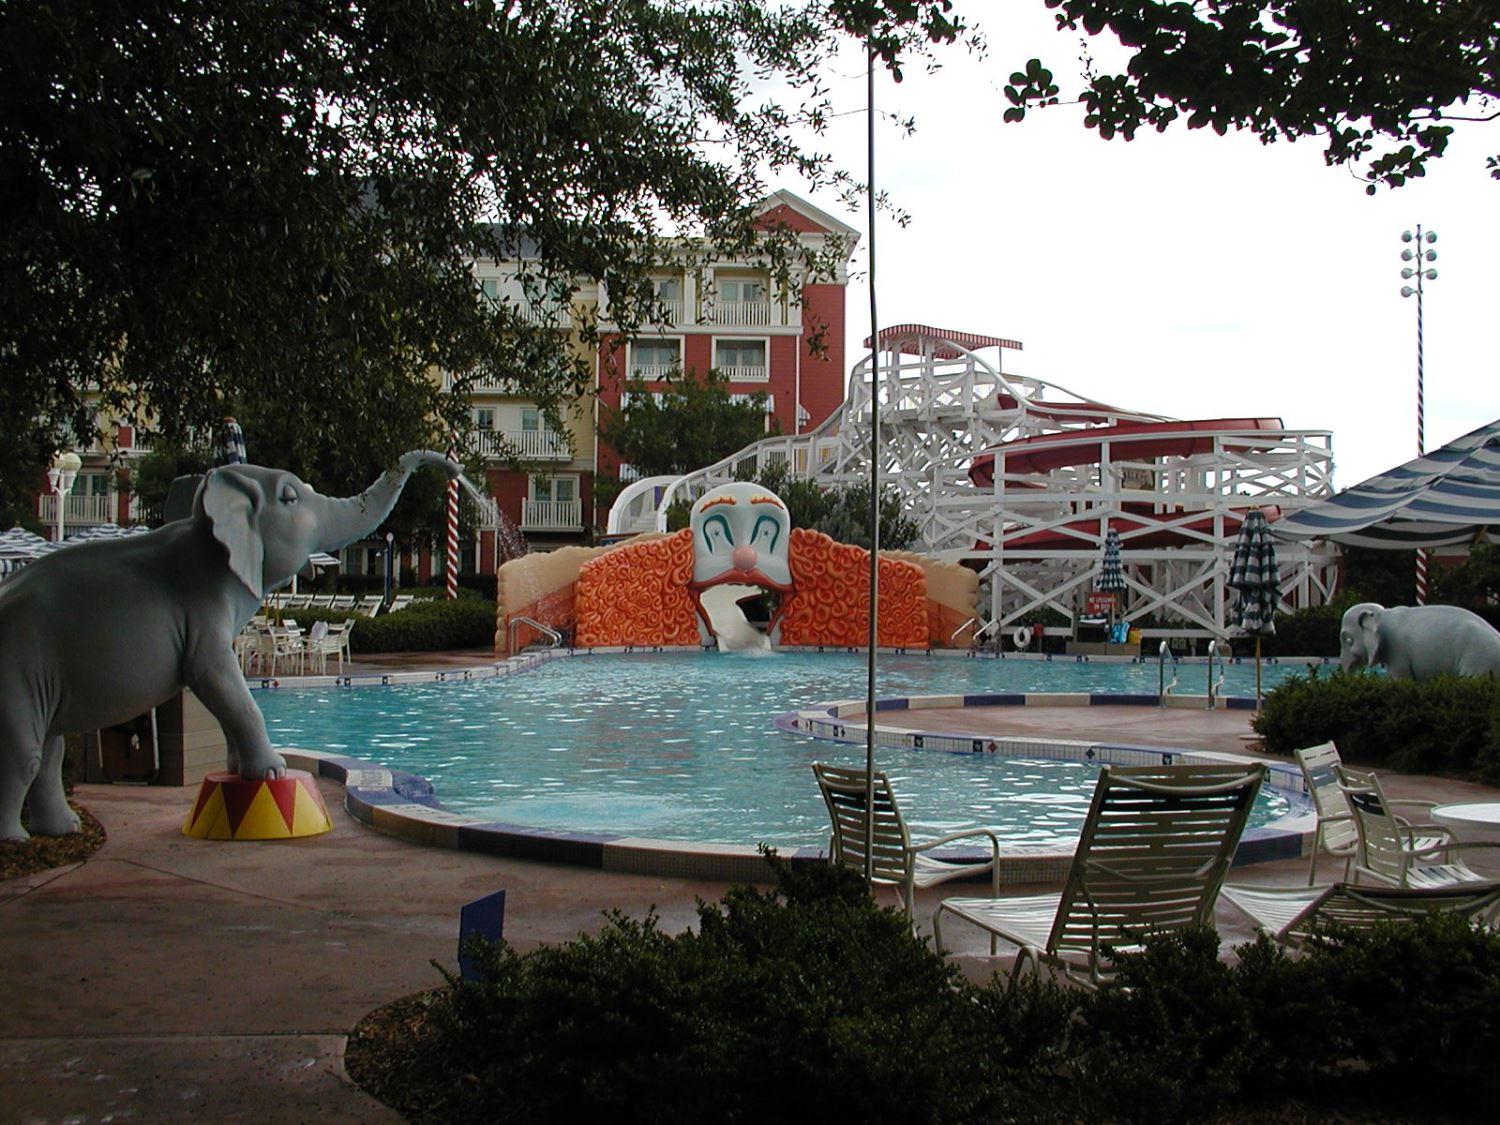 Disneys-Boardwalk-Inn-Luna-Park-Pool.JPG